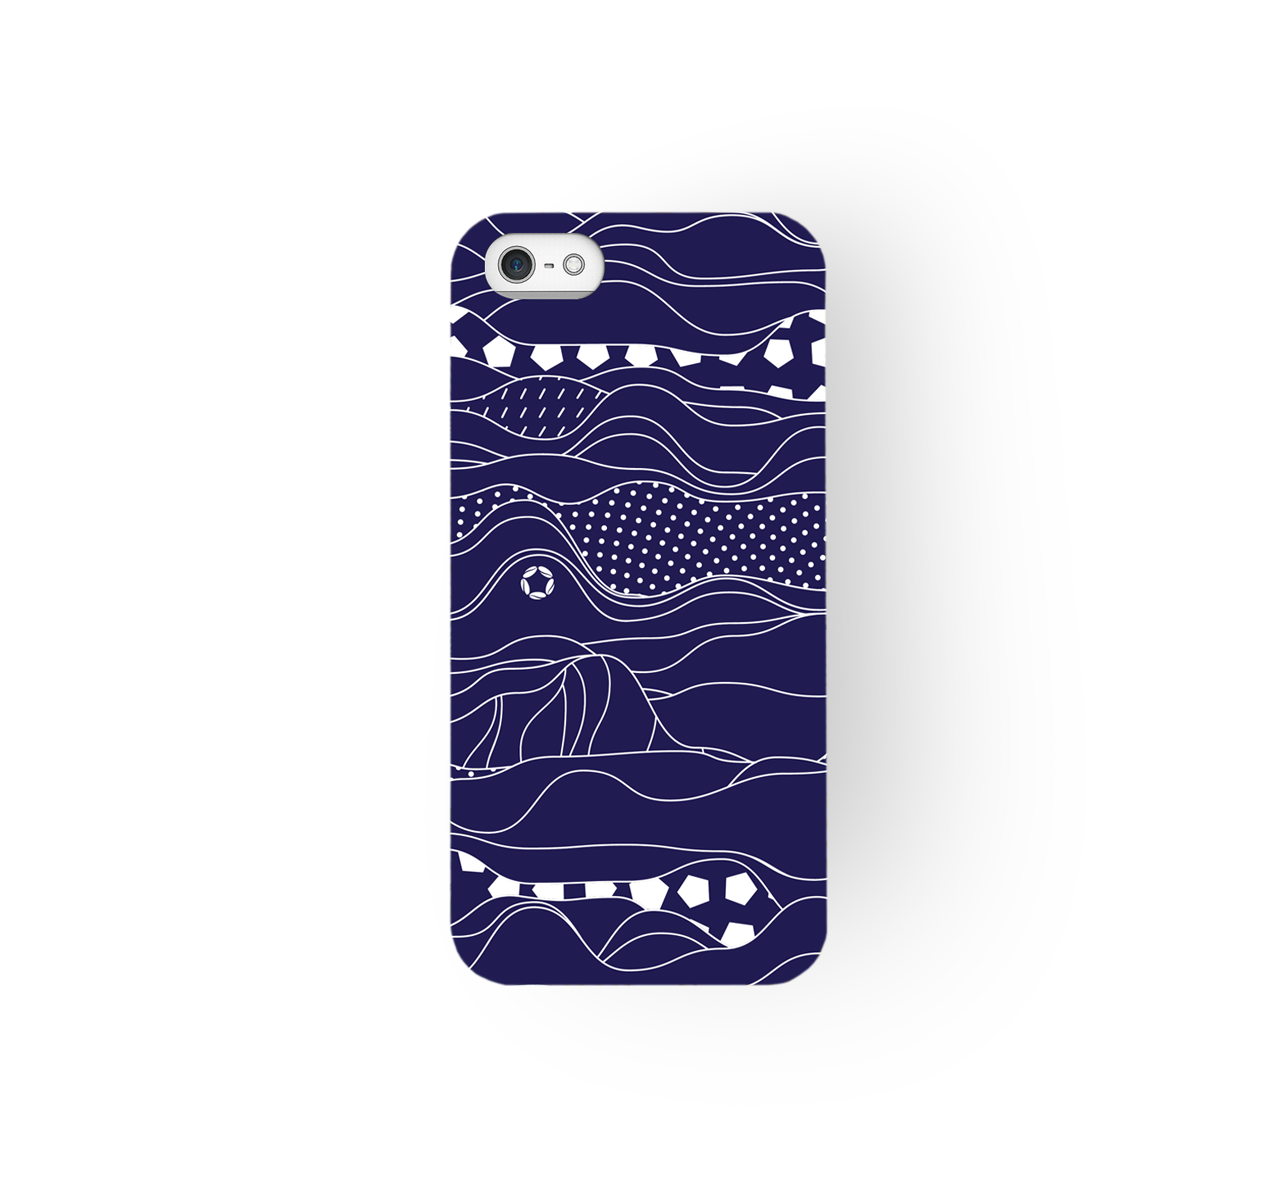 iphone_case2